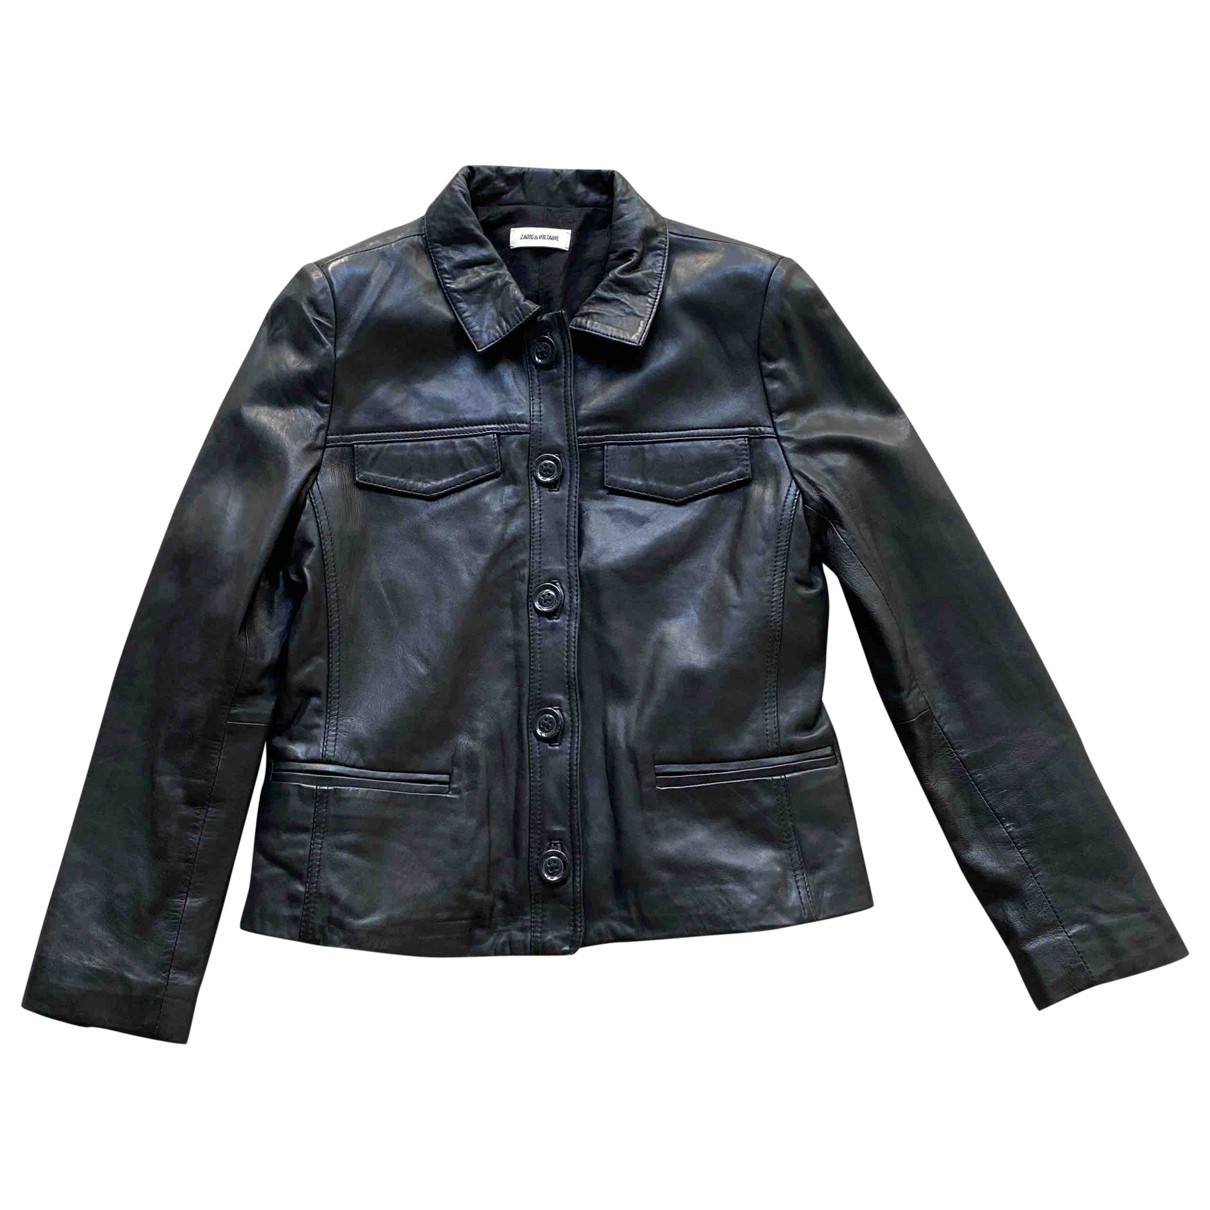 Zadig & Voltaire \N Black Leather jacket for Women M International